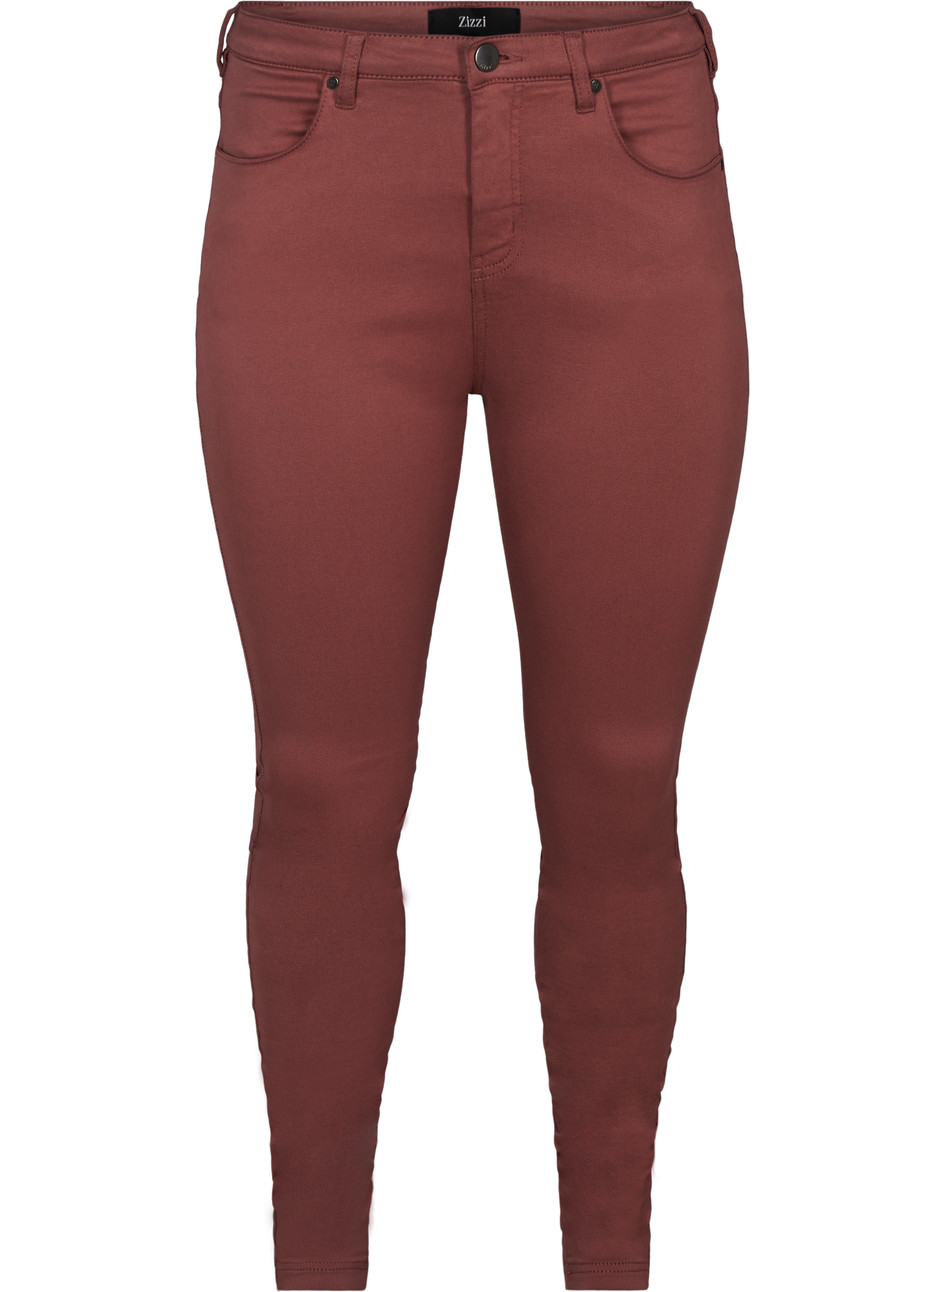 Amy Color Jeans - Wild Ginger